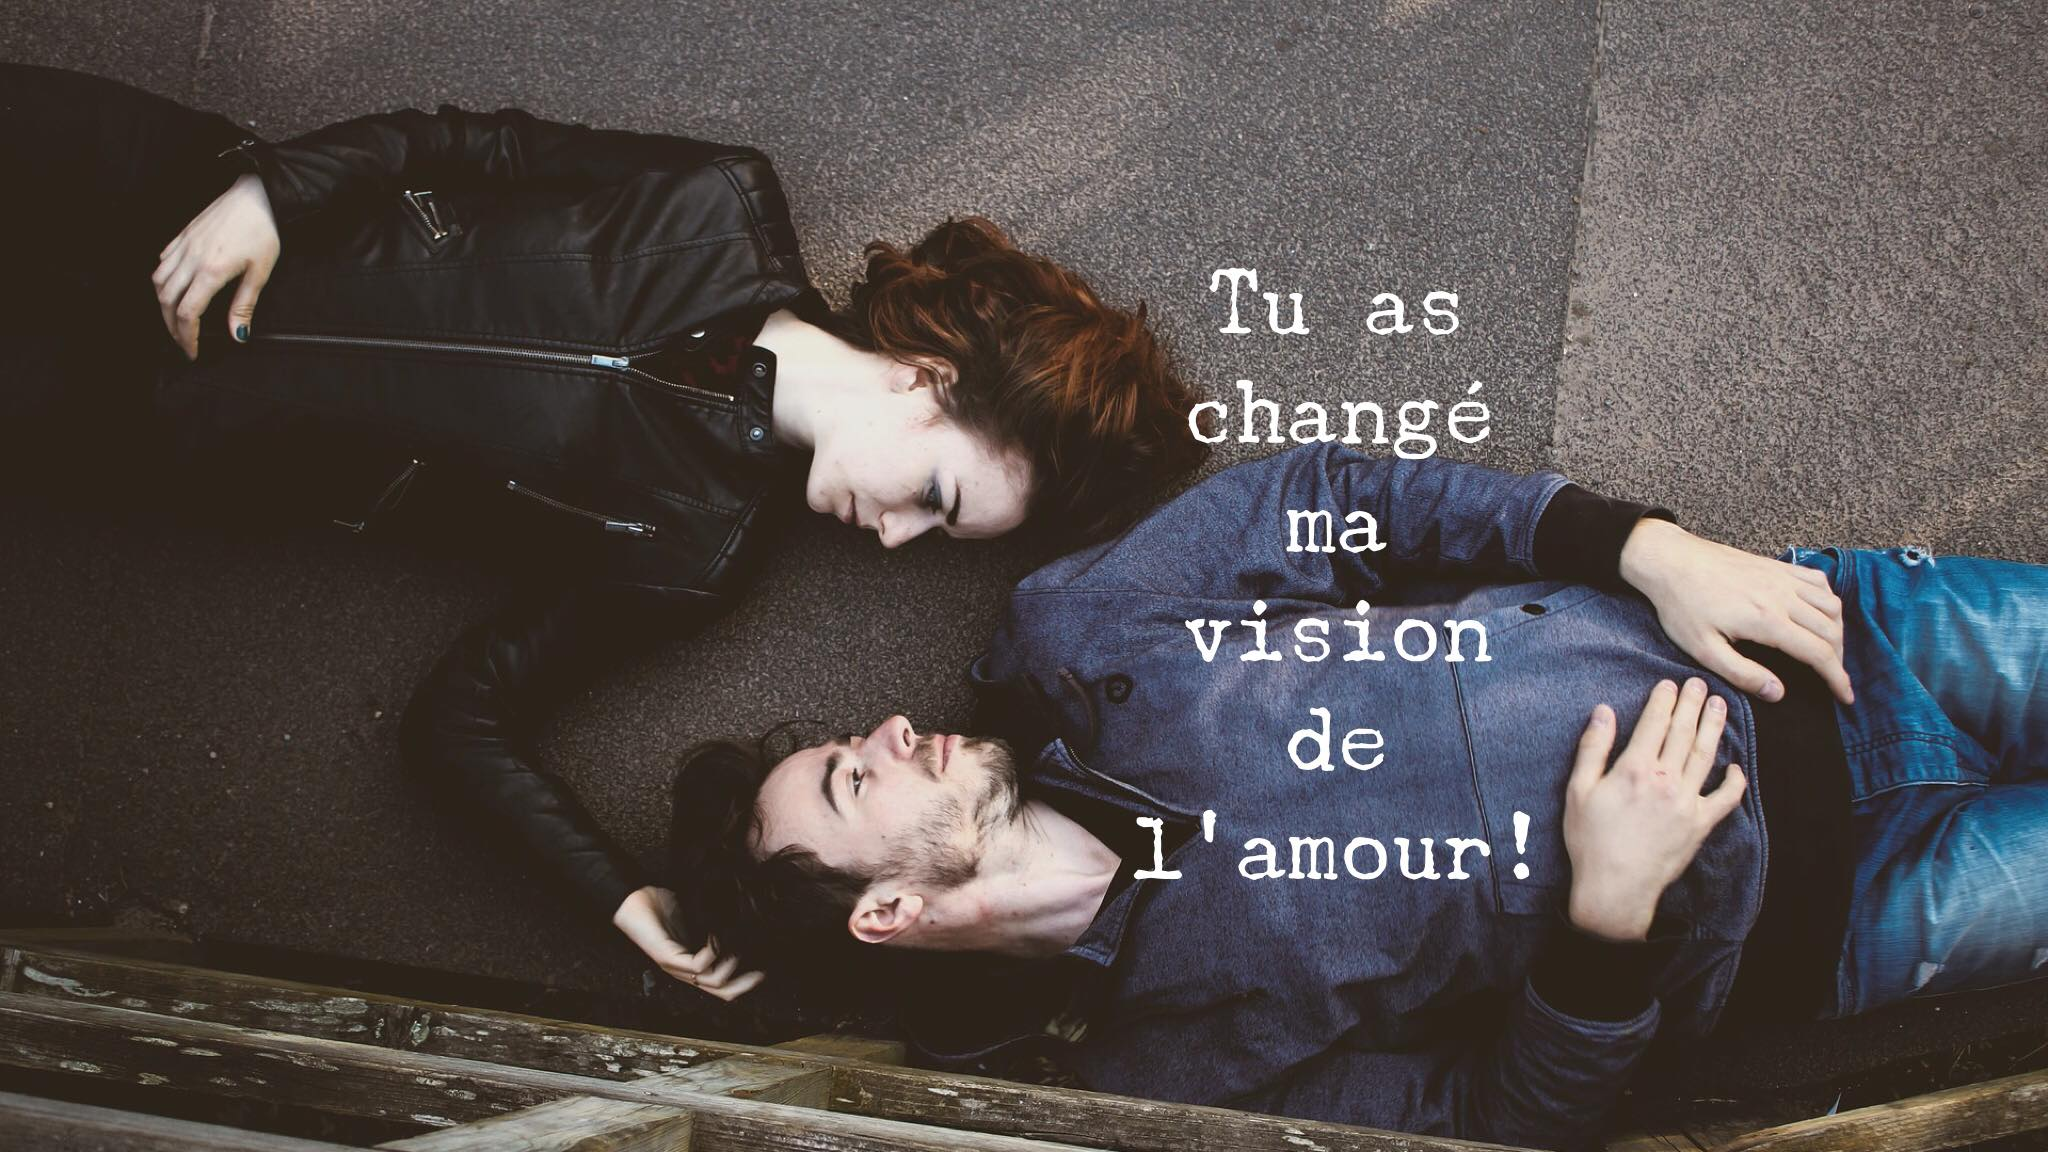 Tu as changé ma vision de l'amour